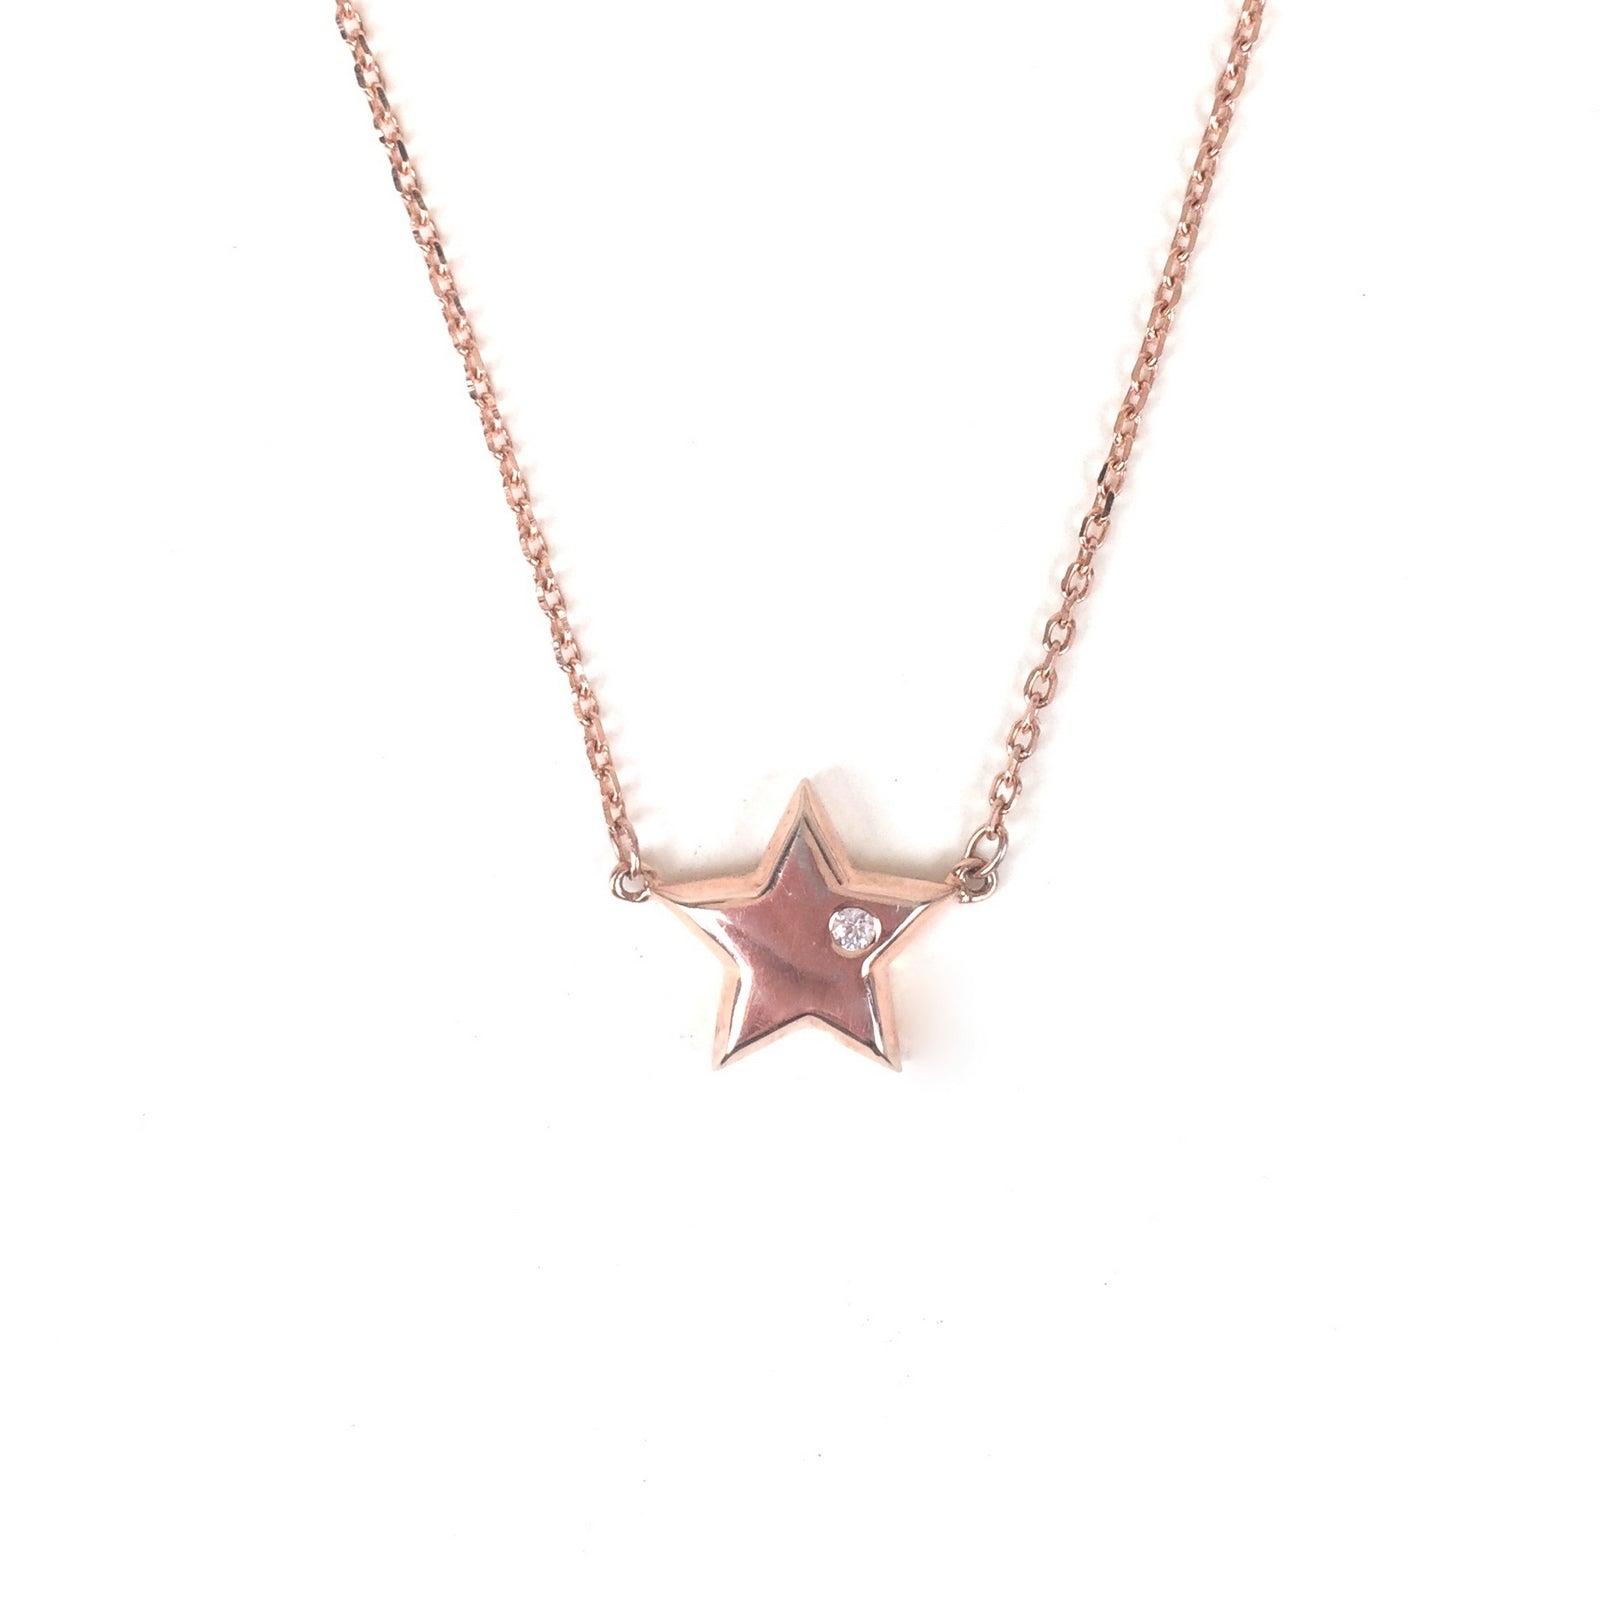 ROSE GOLD STAR STERLING SILVER NECKLACE